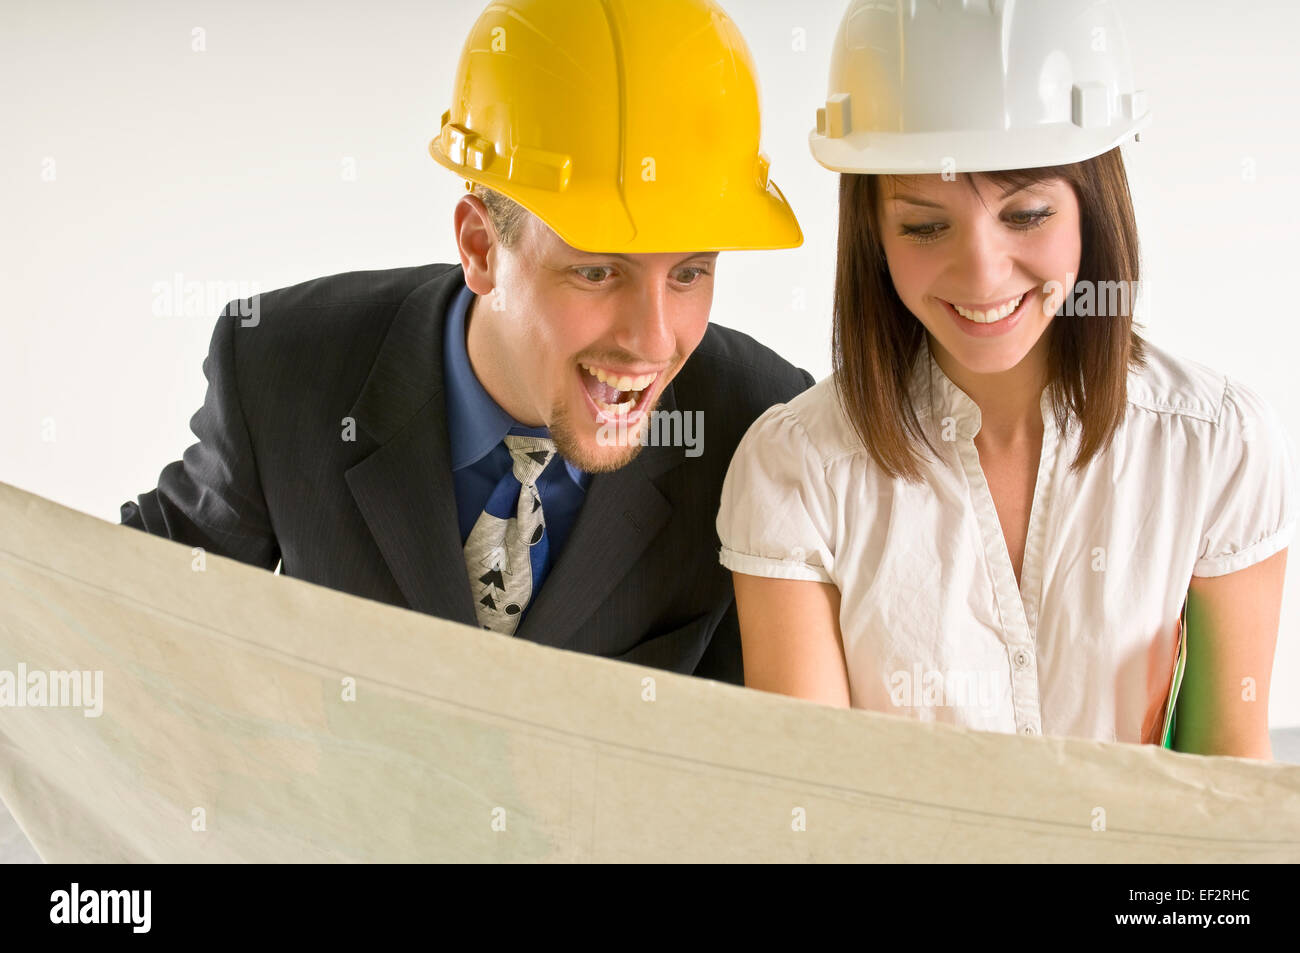 Two architects looking at blueprints - Stock Image